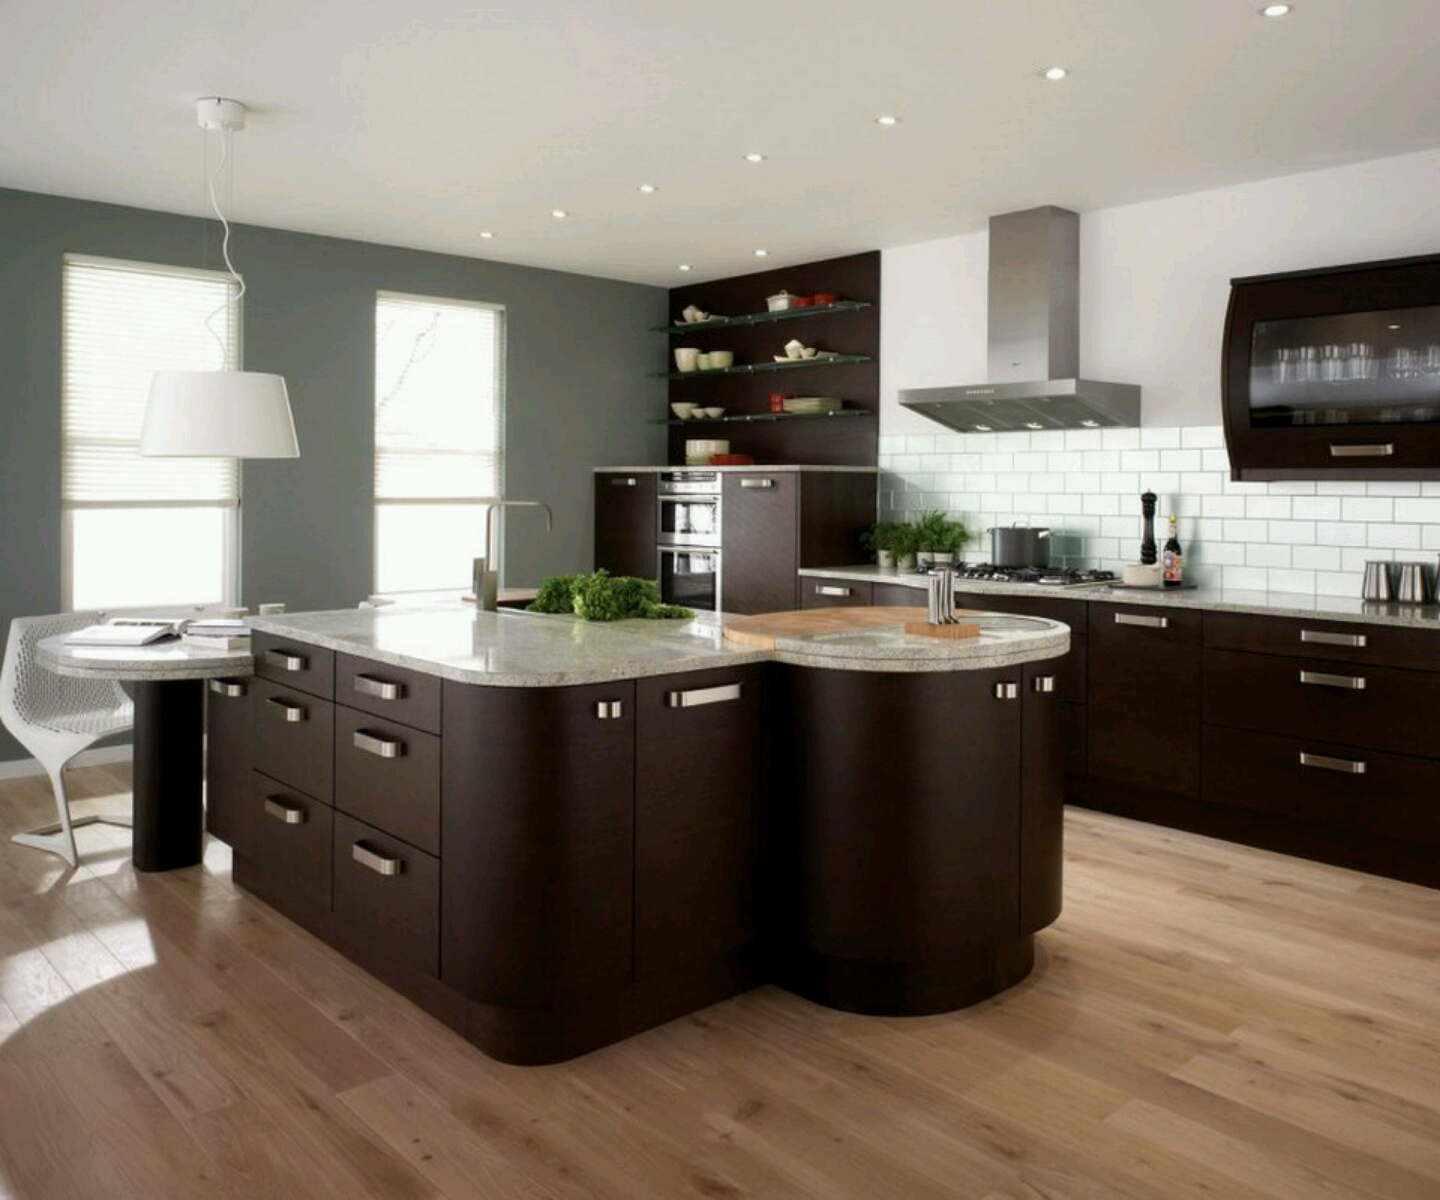 Abkd50 Awesome Brown Kitchen Designs Today 2020 11 29